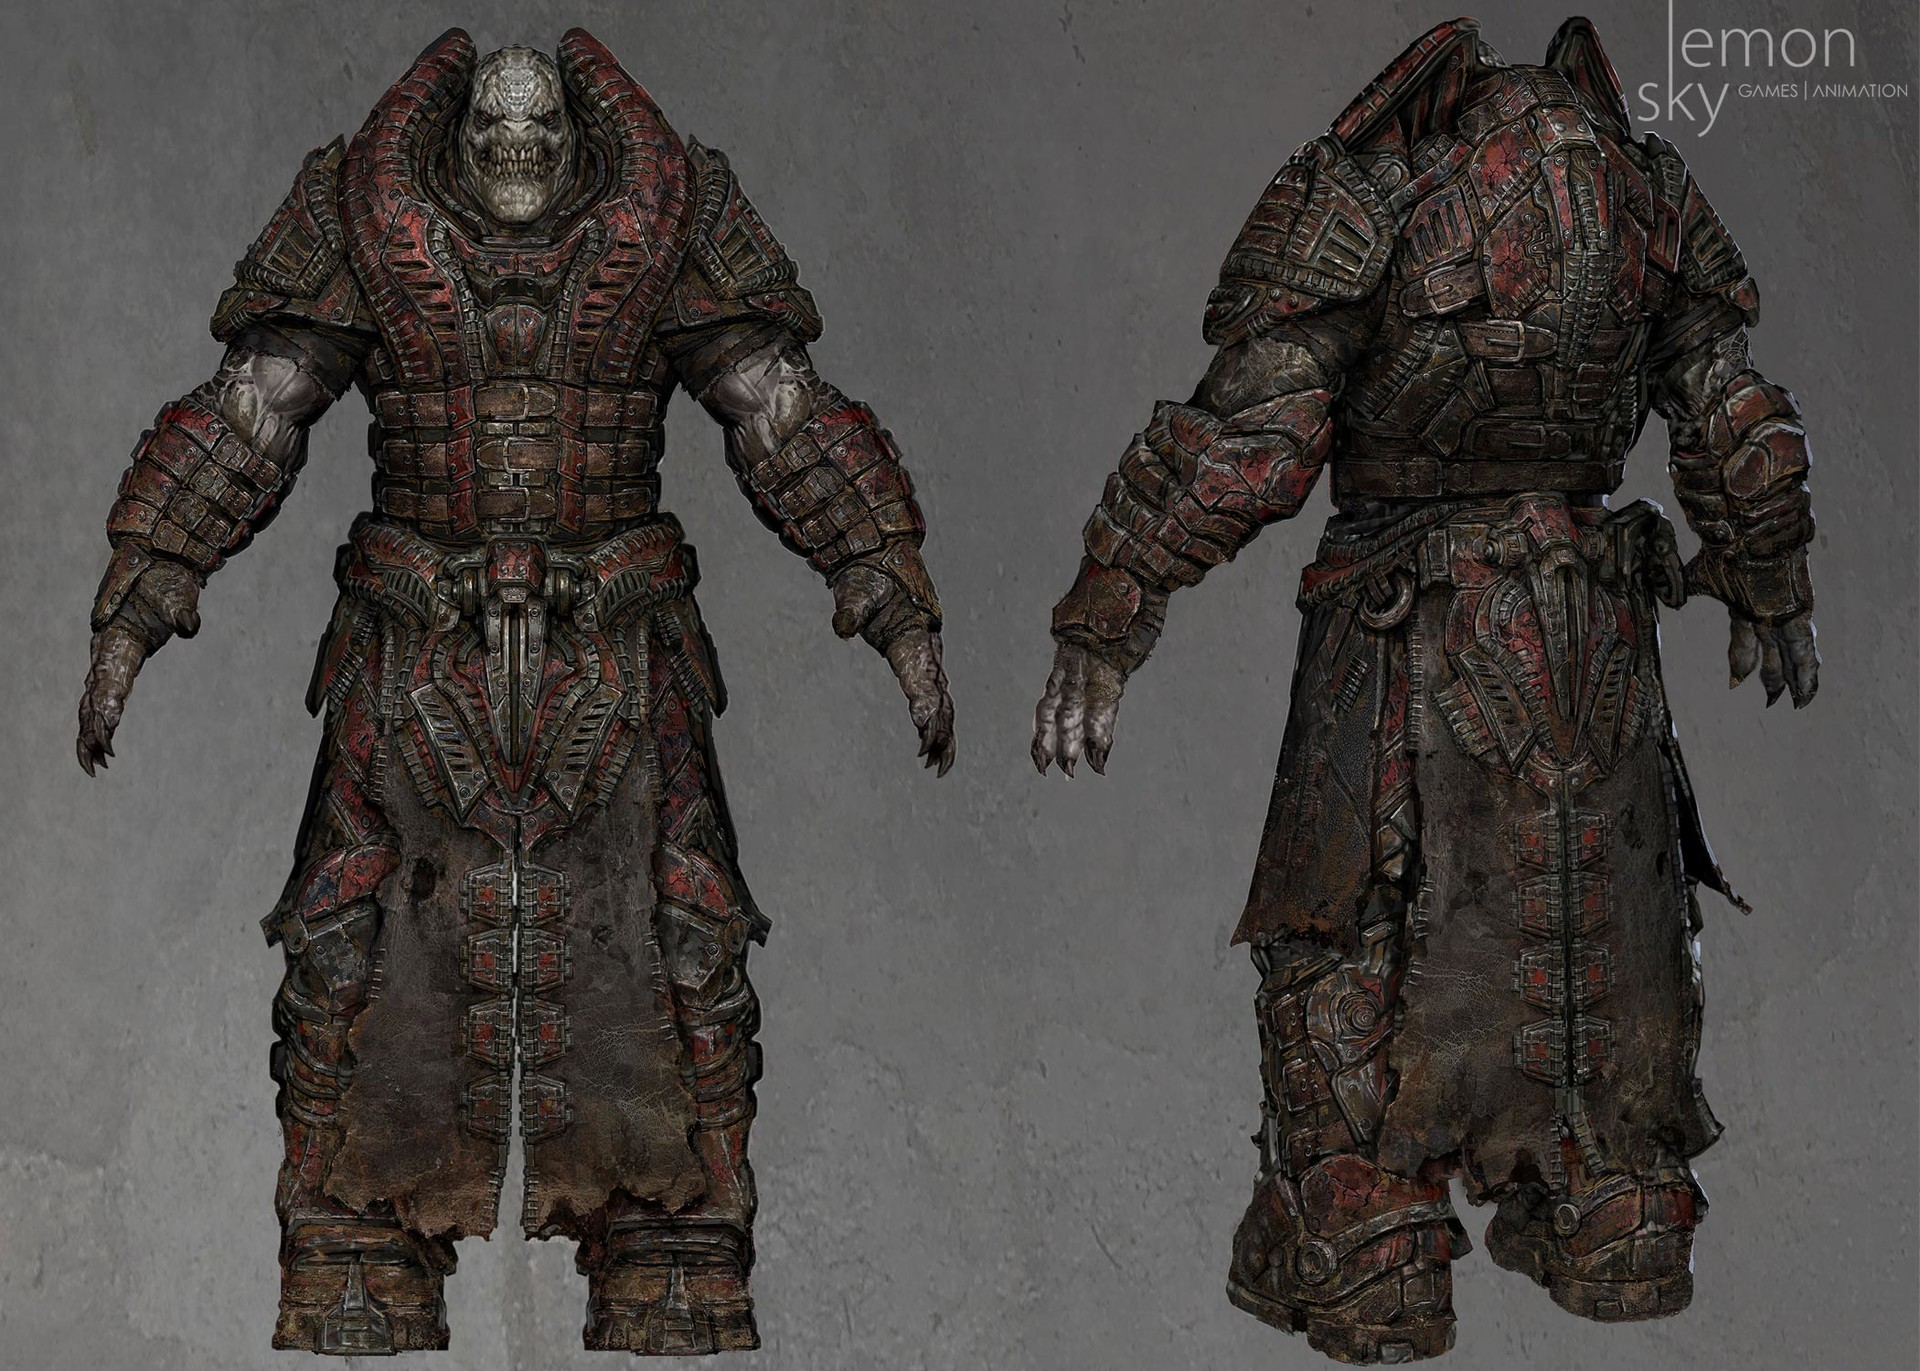 Jeremy chong lemonsky the coalition gears of war ultimate edition conceptart theron b